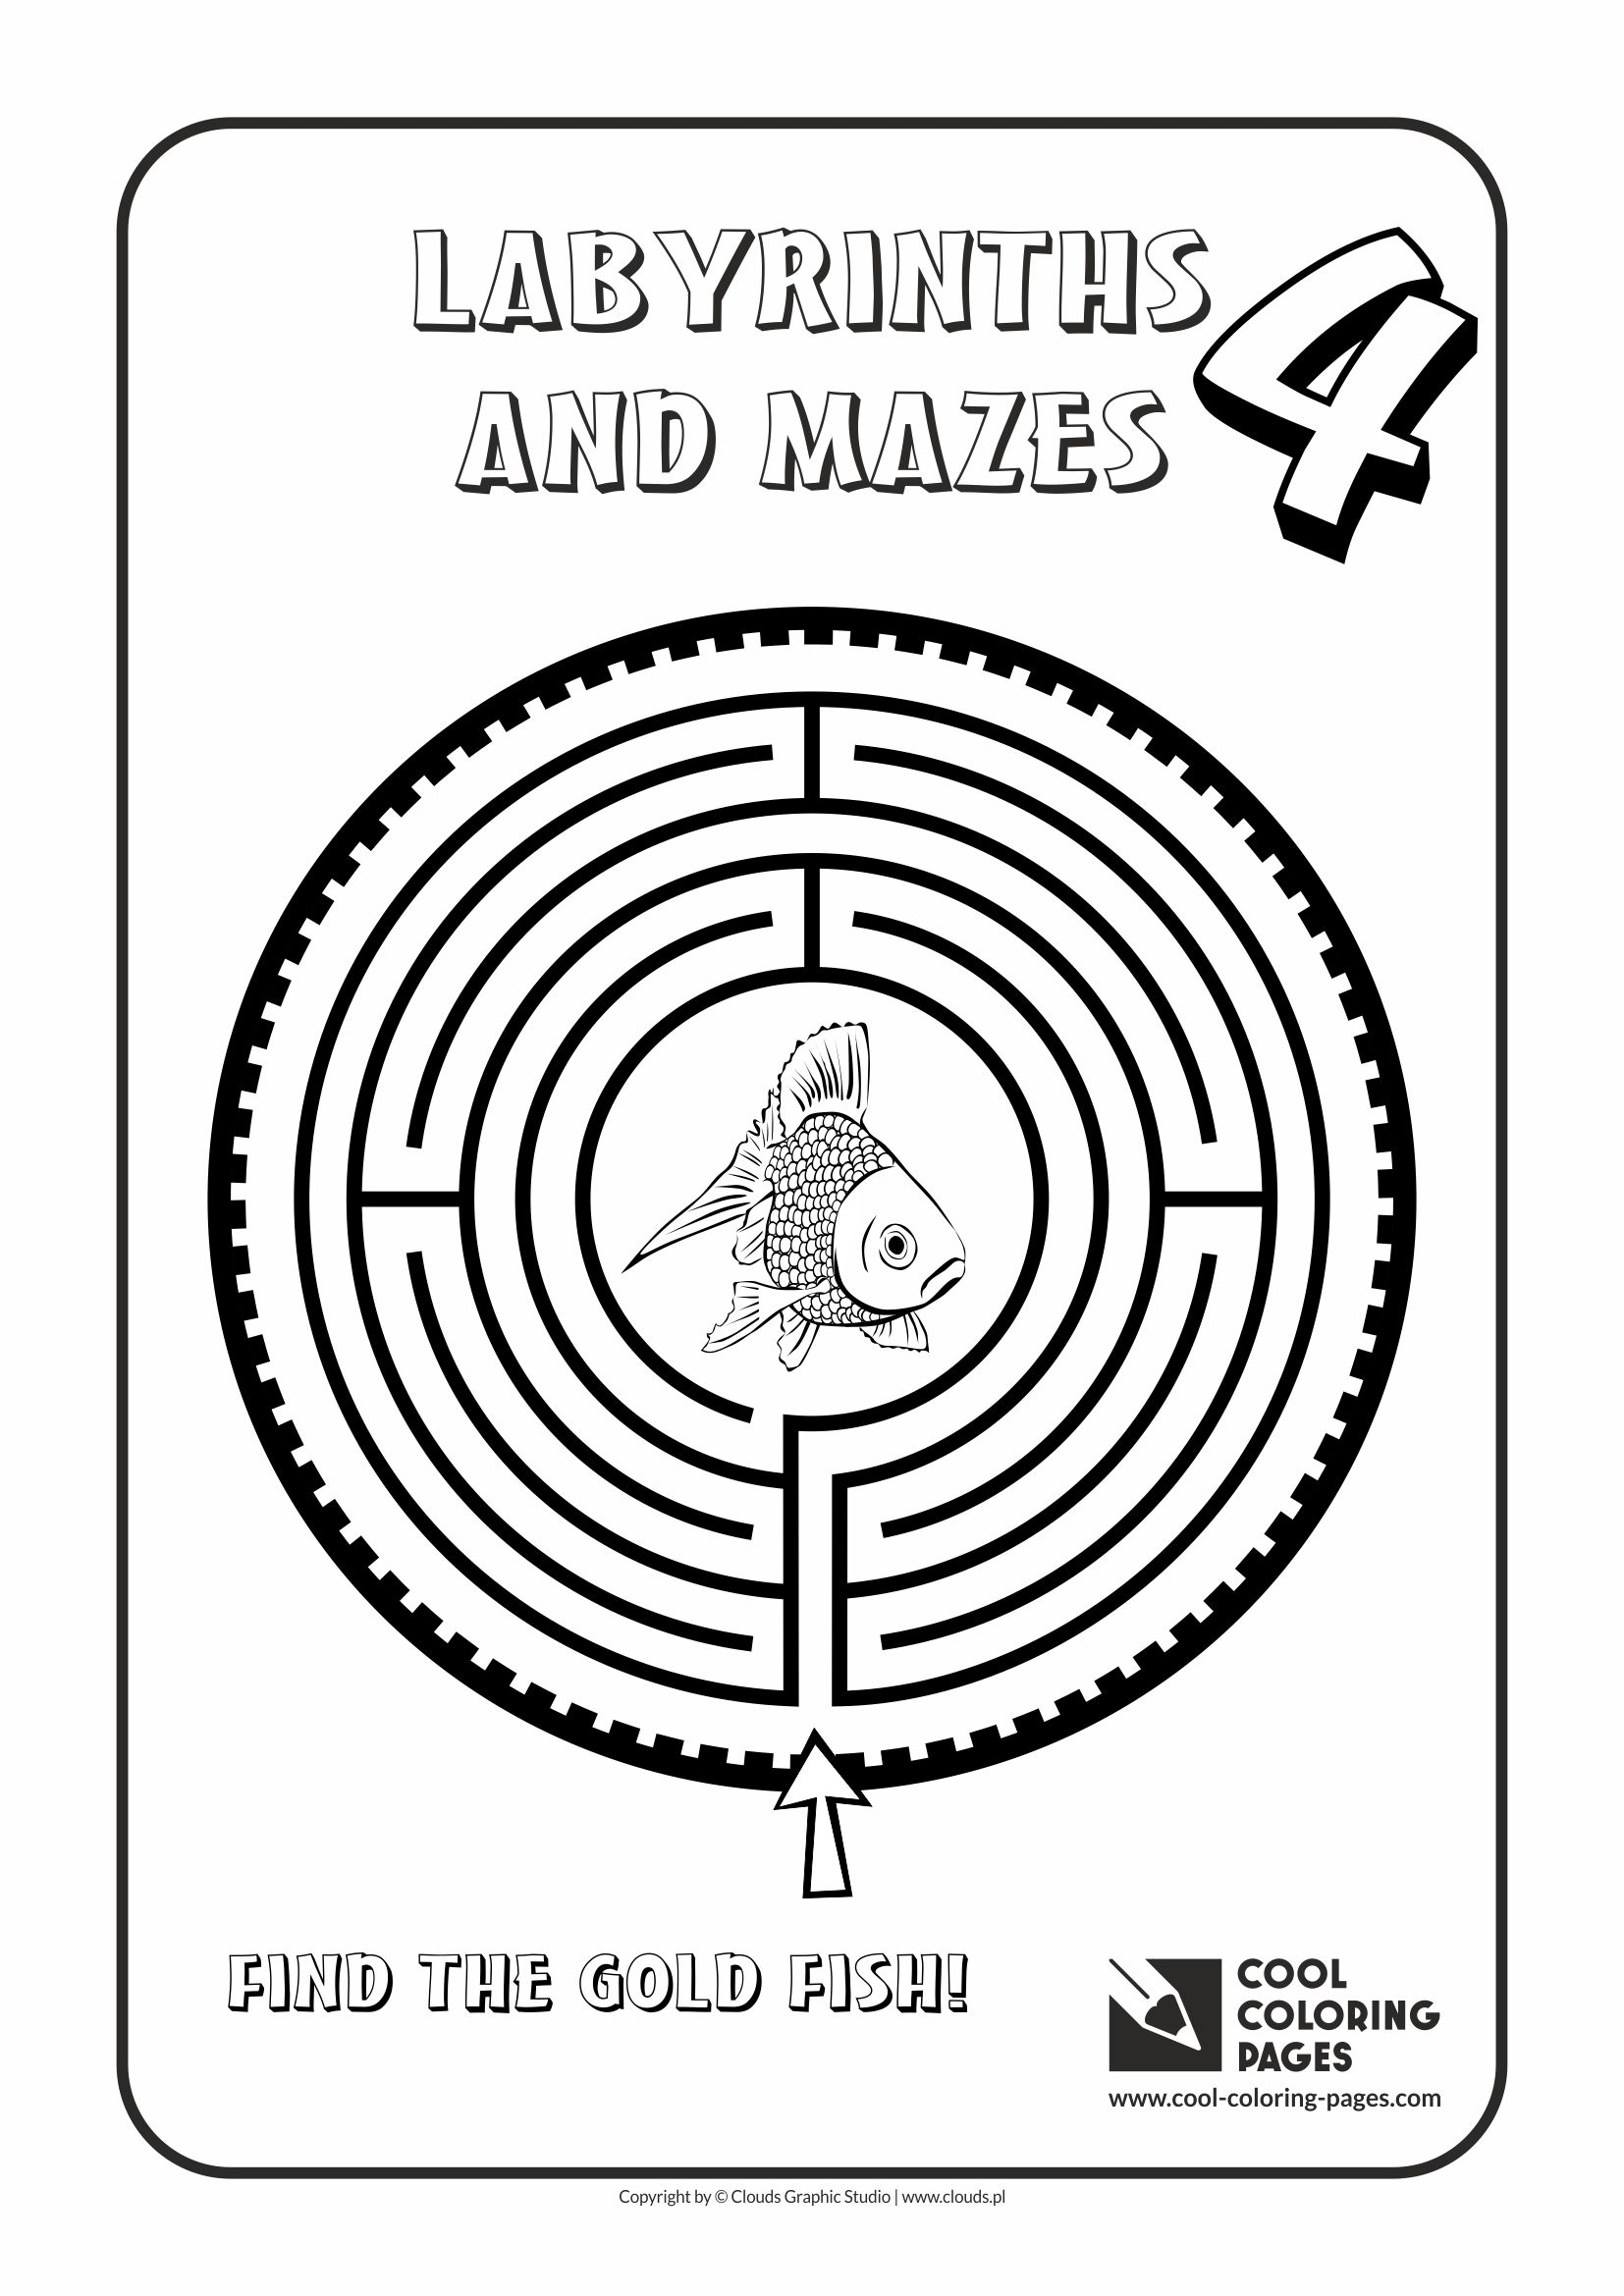 Cool Coloring Pages - Labyrinths and mazes / Maze no 4